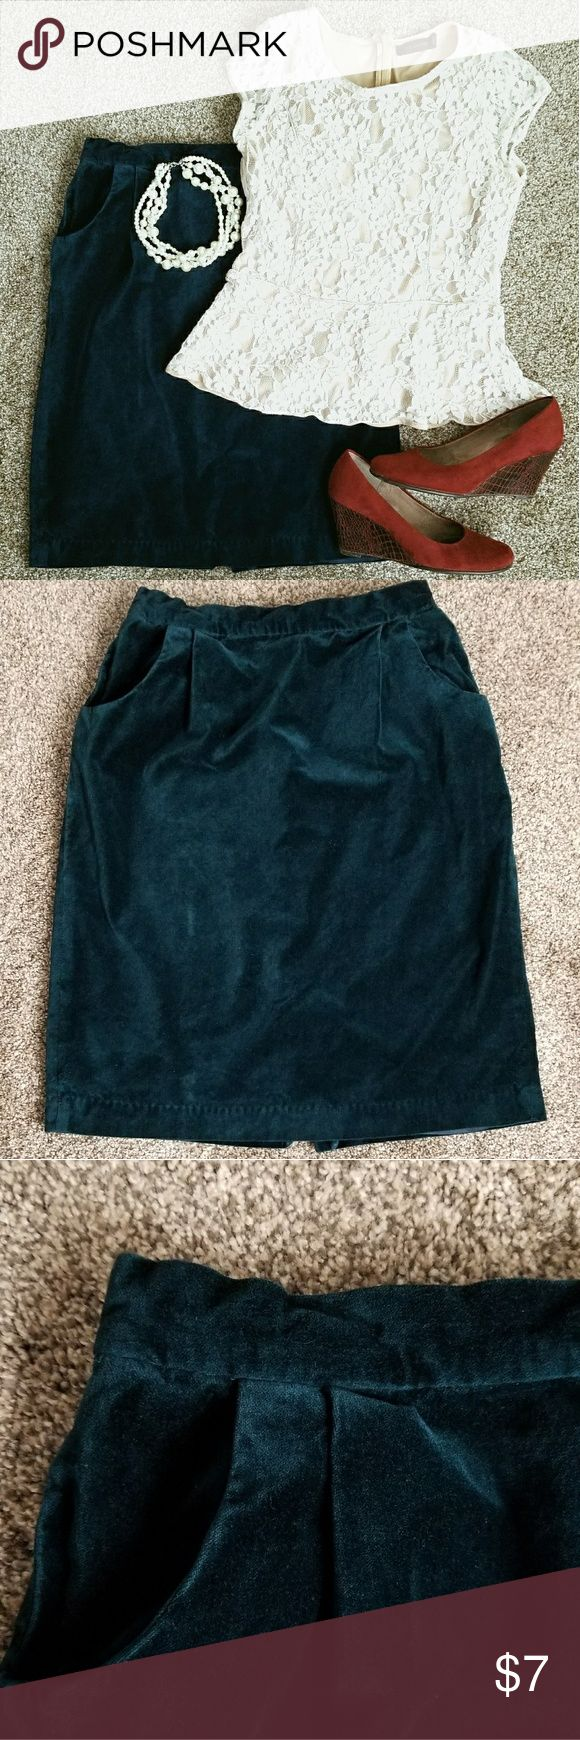 Deep teal green skirt with pockets This is a velour skirt in great condition. It is deep teal green with pockets.  Can be dressed up, but is also perfect for the office. Size 8, but fits like a 6.  Has a bit of elastic in the back to help with fit. Skirts Pencil